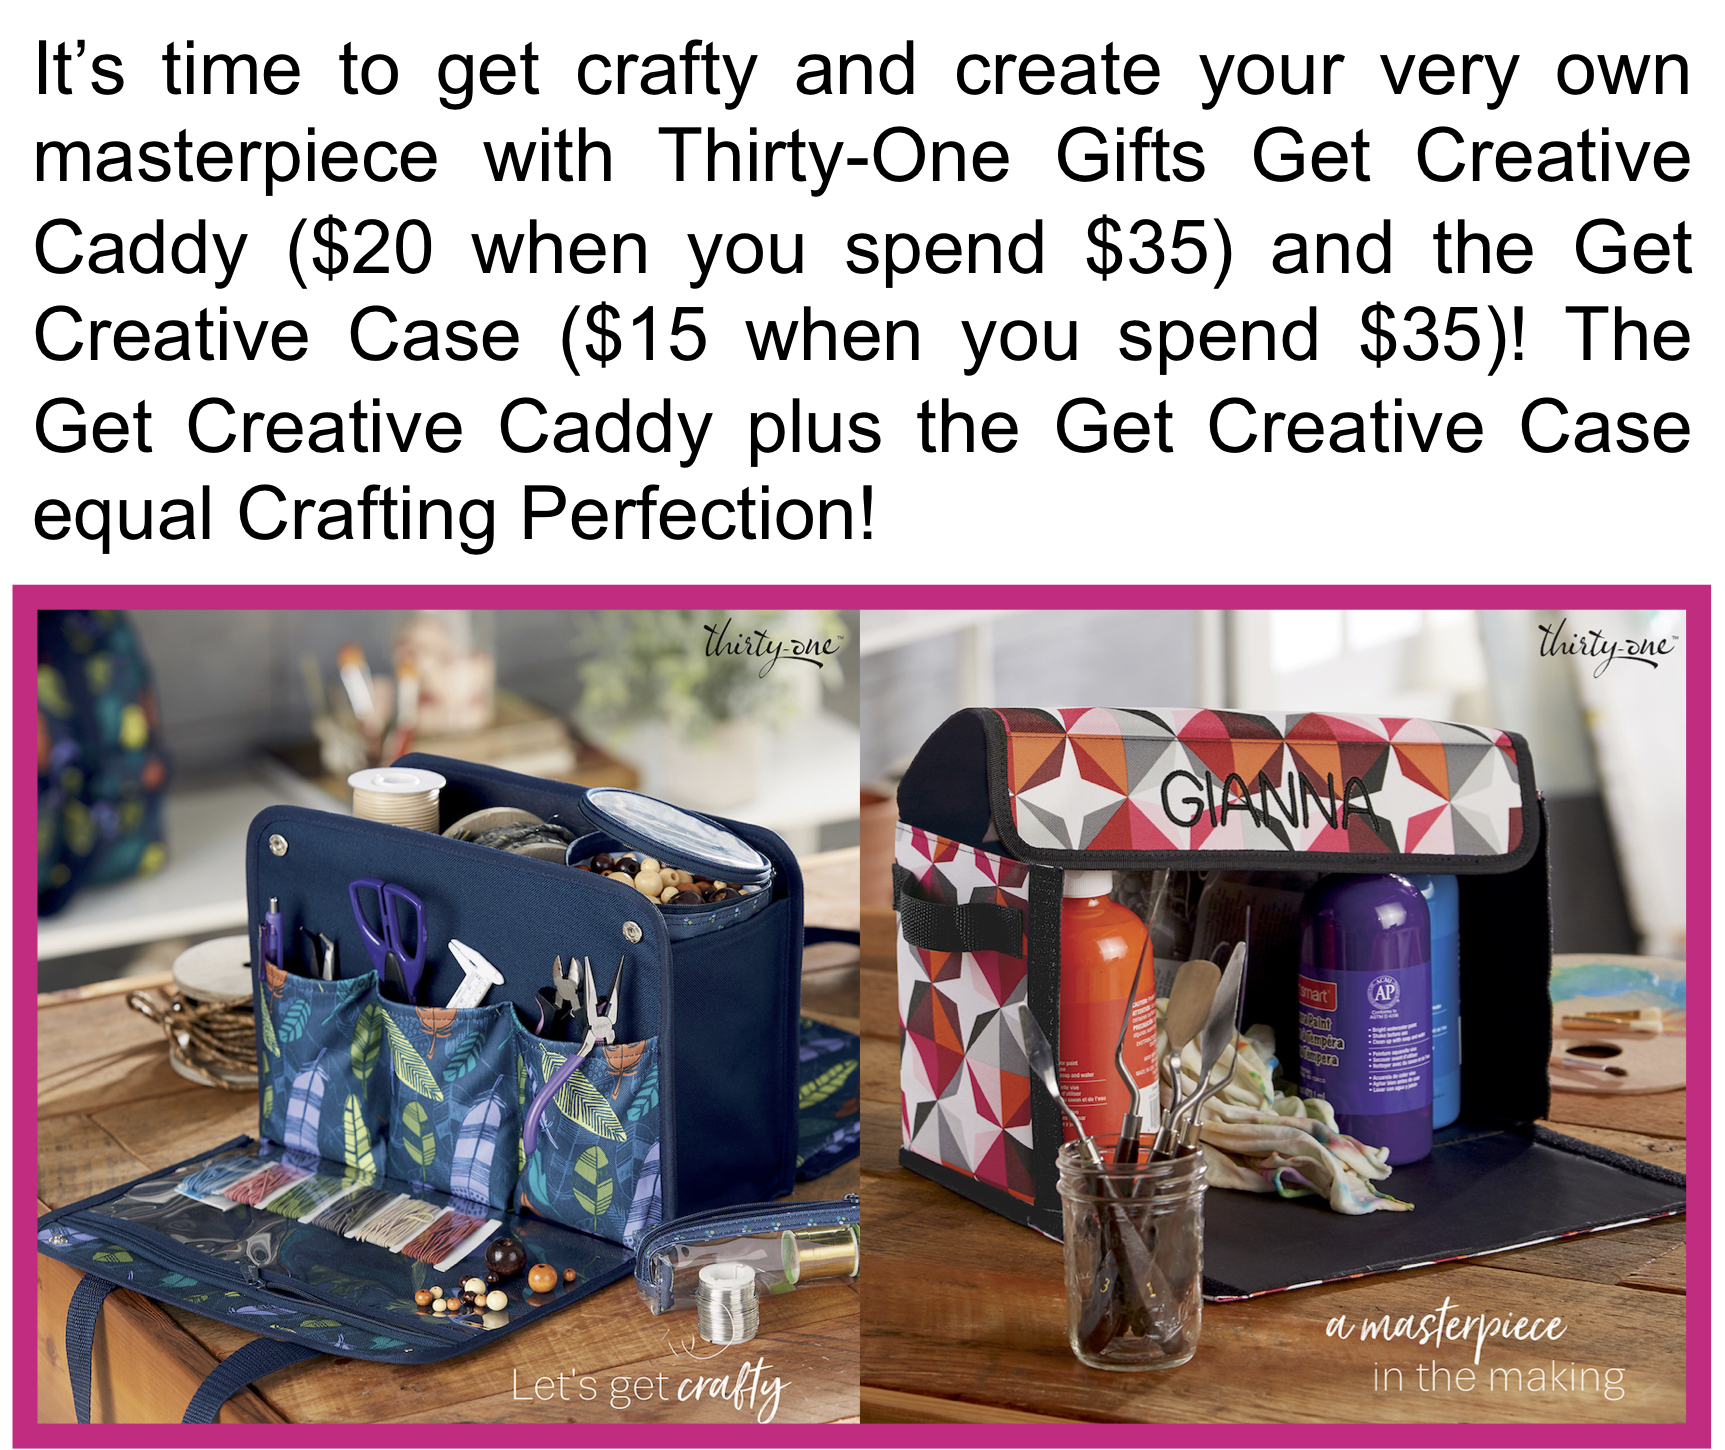 Get Creative with Thirty-One Gifts